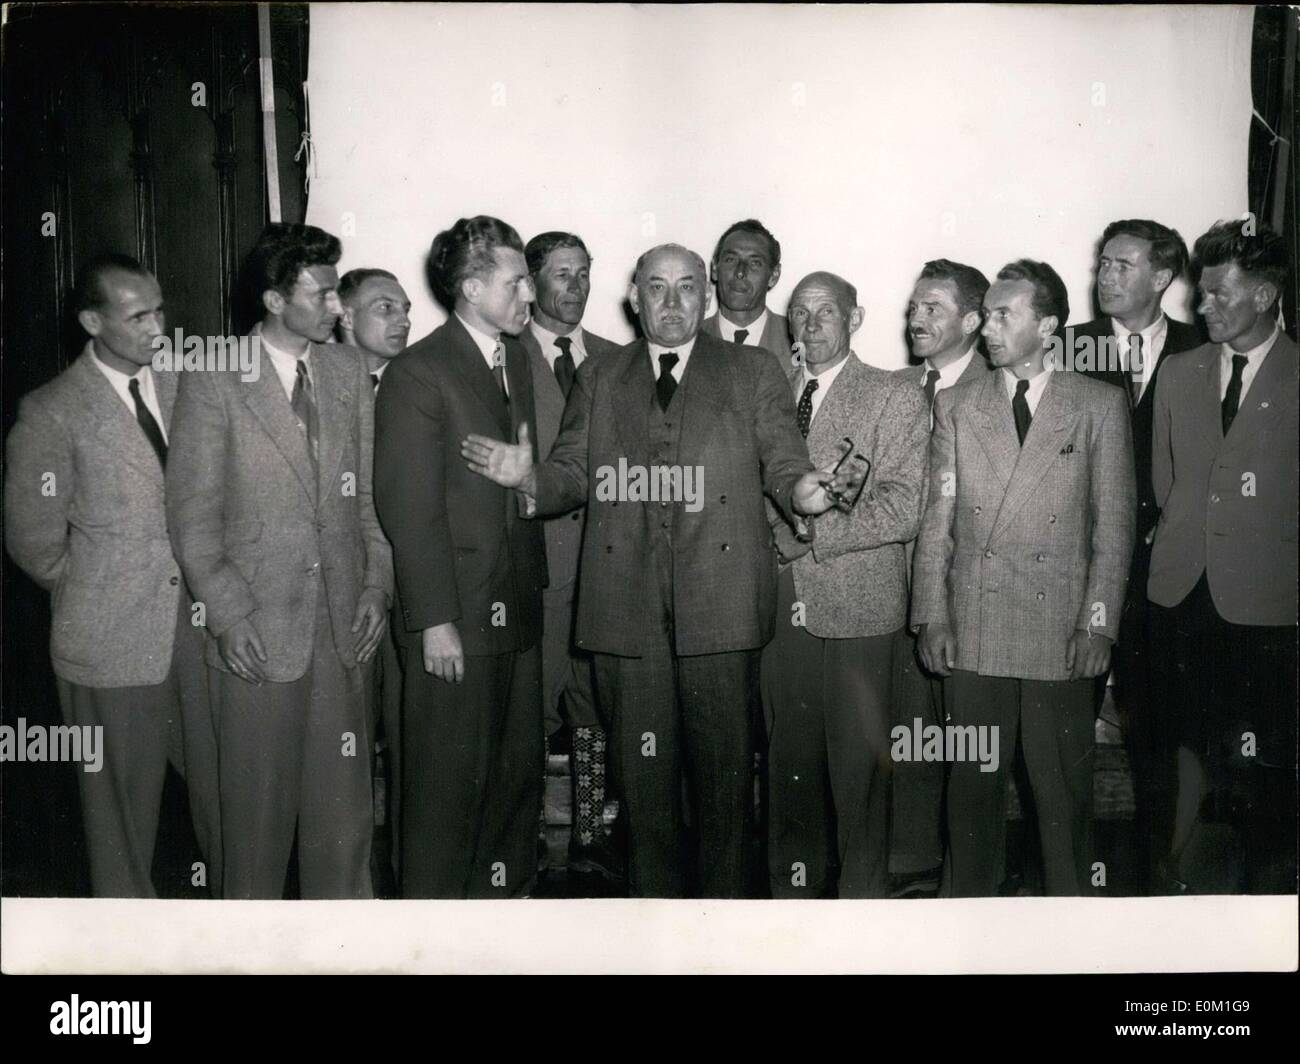 Mar. 26, 1953 - Thomas Wimmer, mayor of Munich, is pictured here with the German members of the Nanga Parbat Expedition, Stock Photo